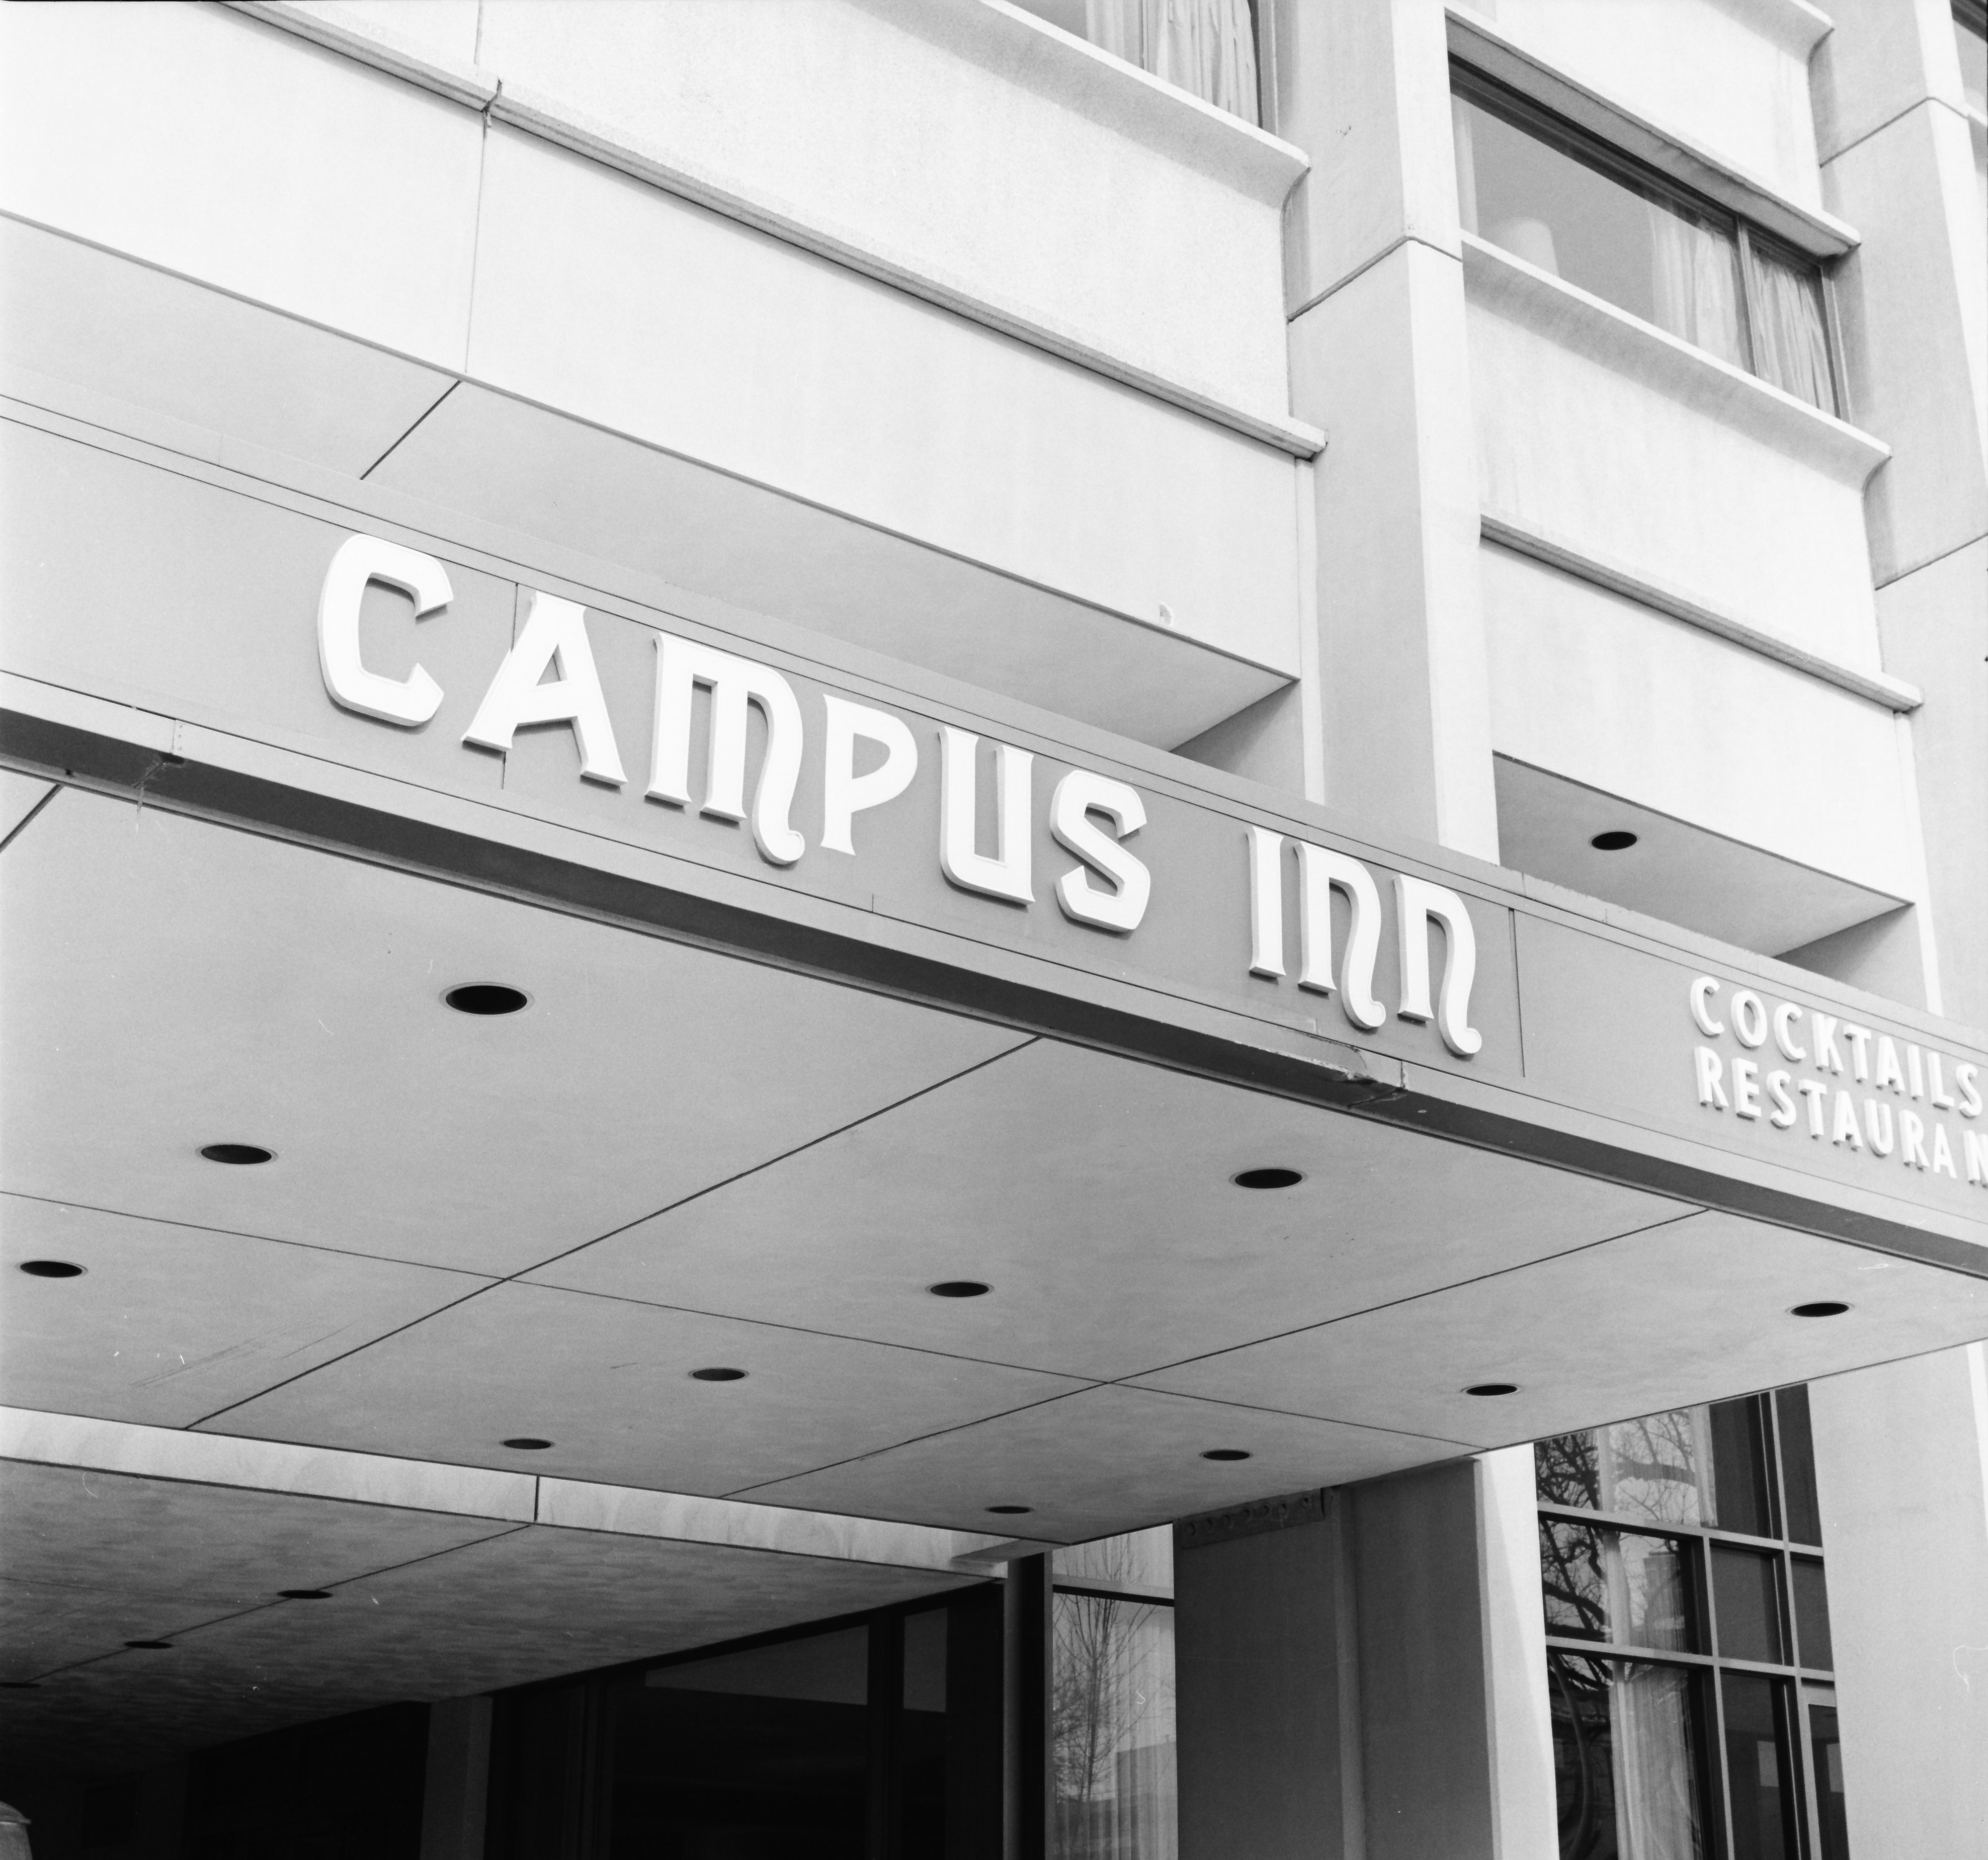 Canopy Sign, Campus Inn, February 1974 image